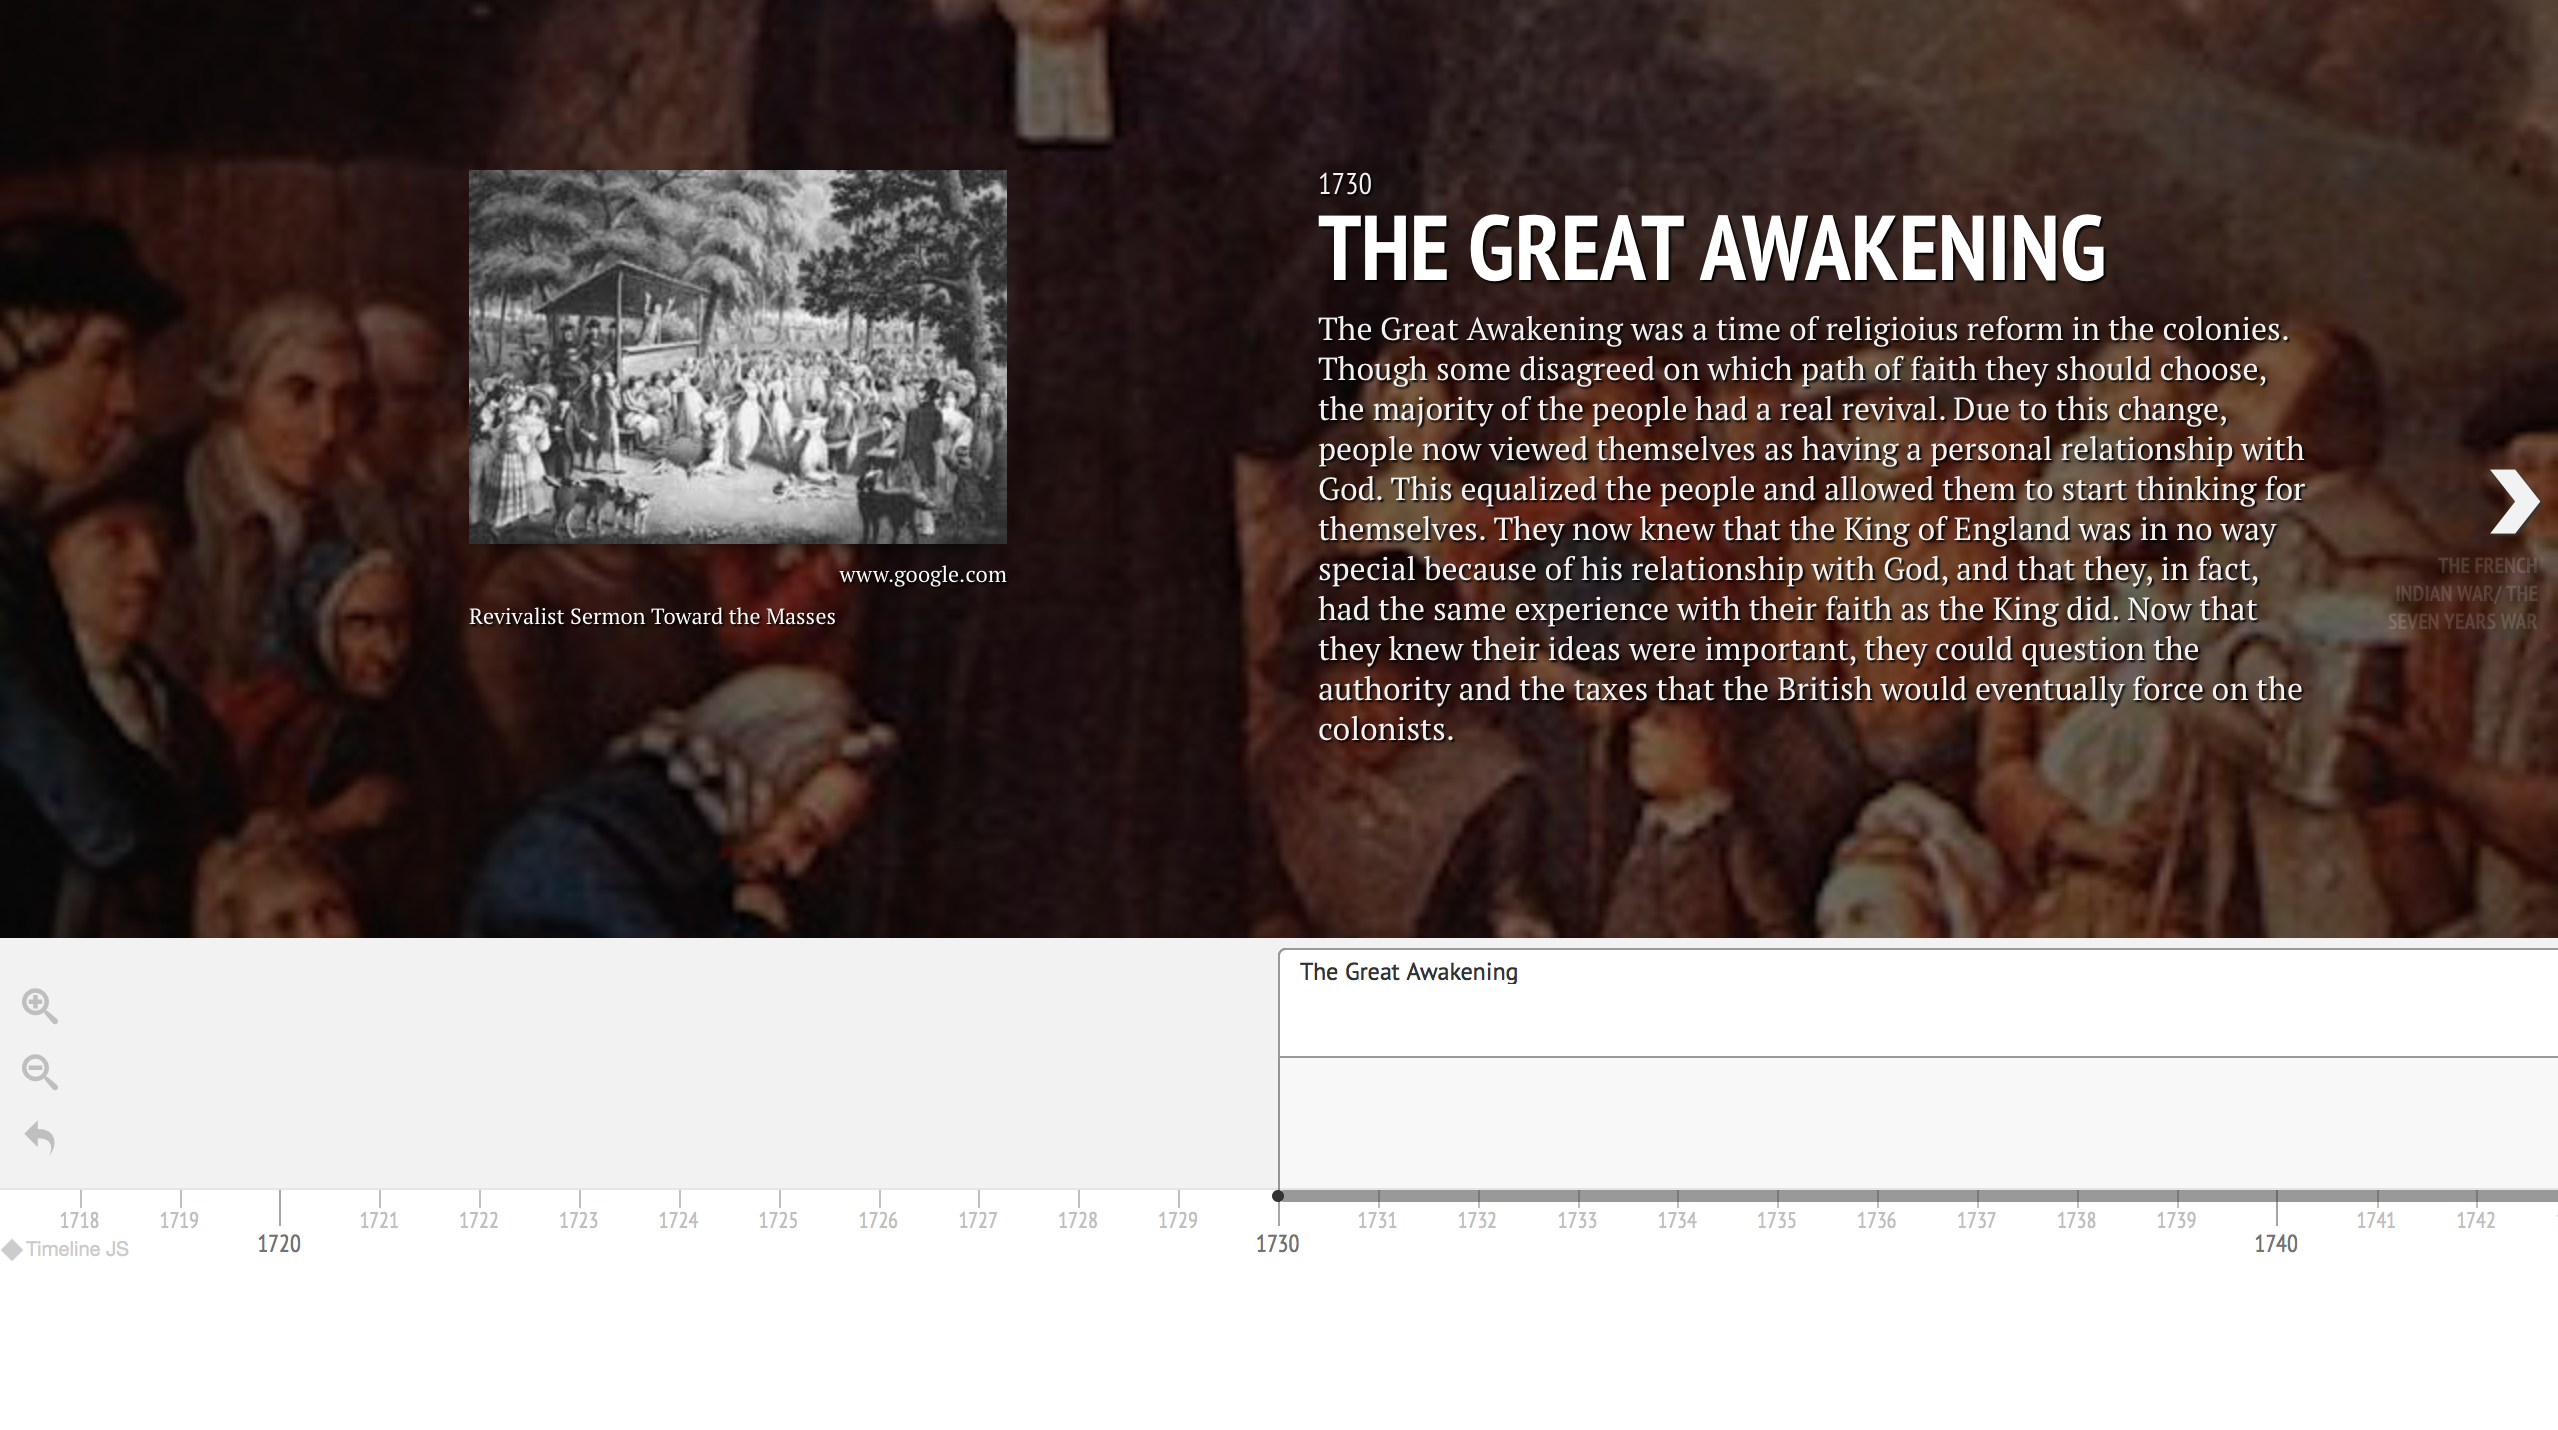 Timeline of the Great Awakening.